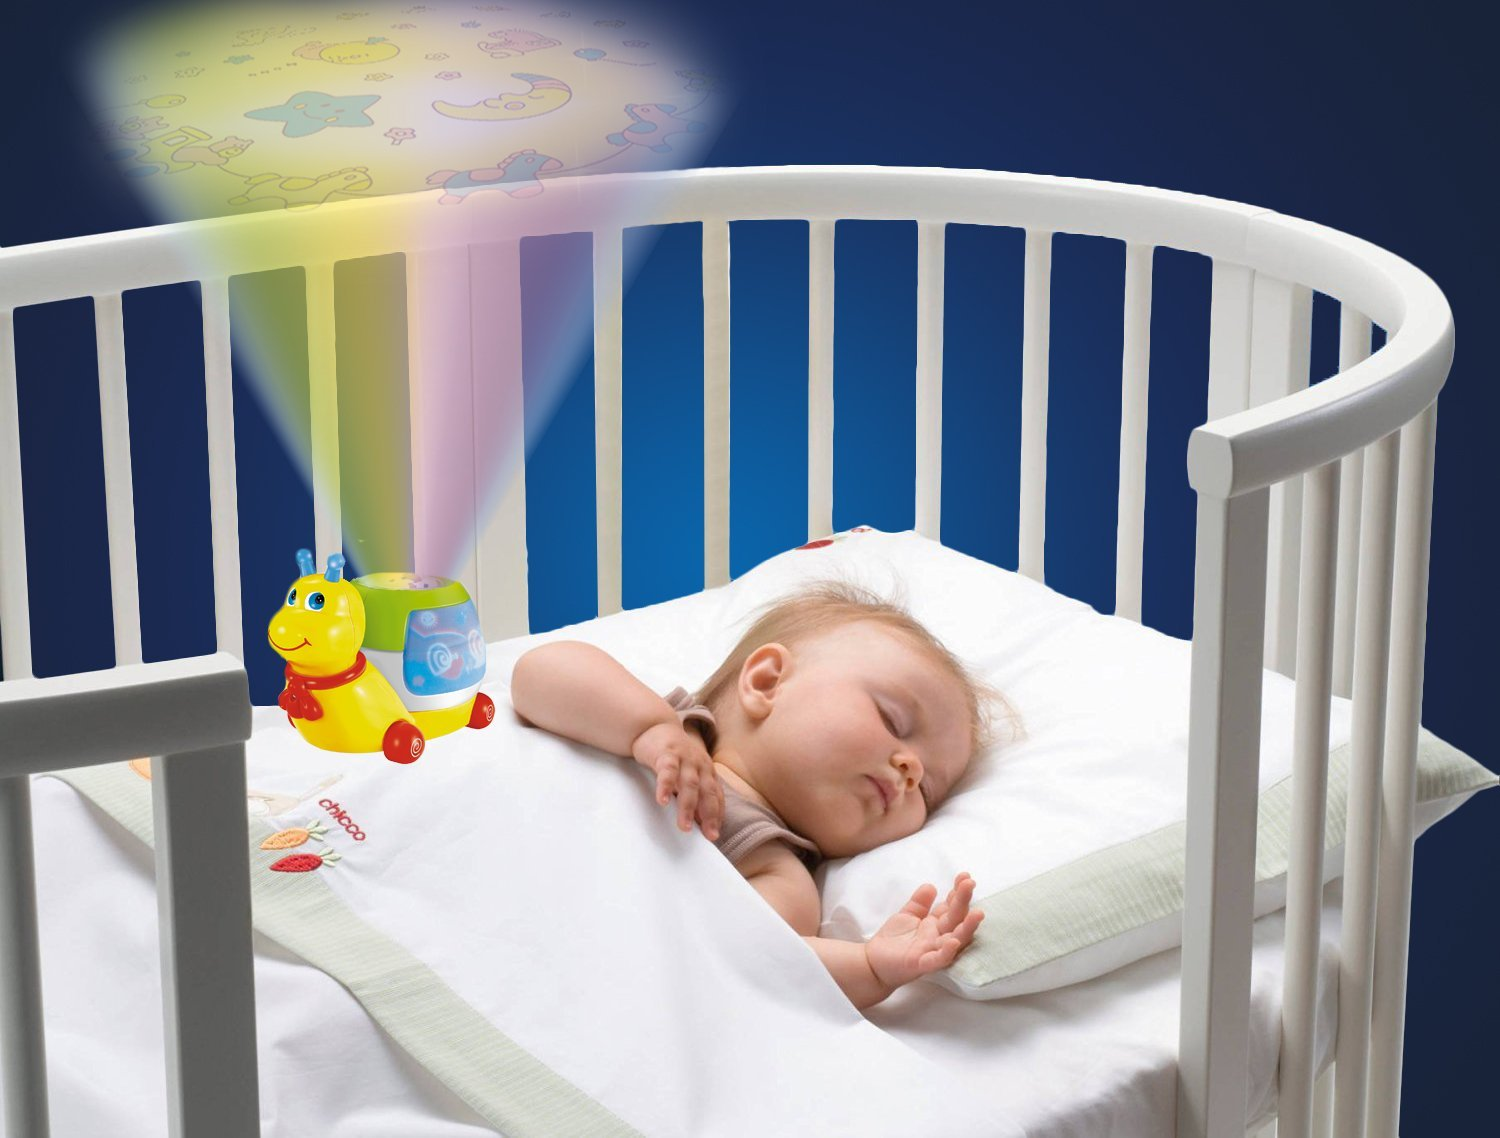 A Forest Baby Night Light Projector Lullaby Music Toddler Pull Along Toy Animal Crib